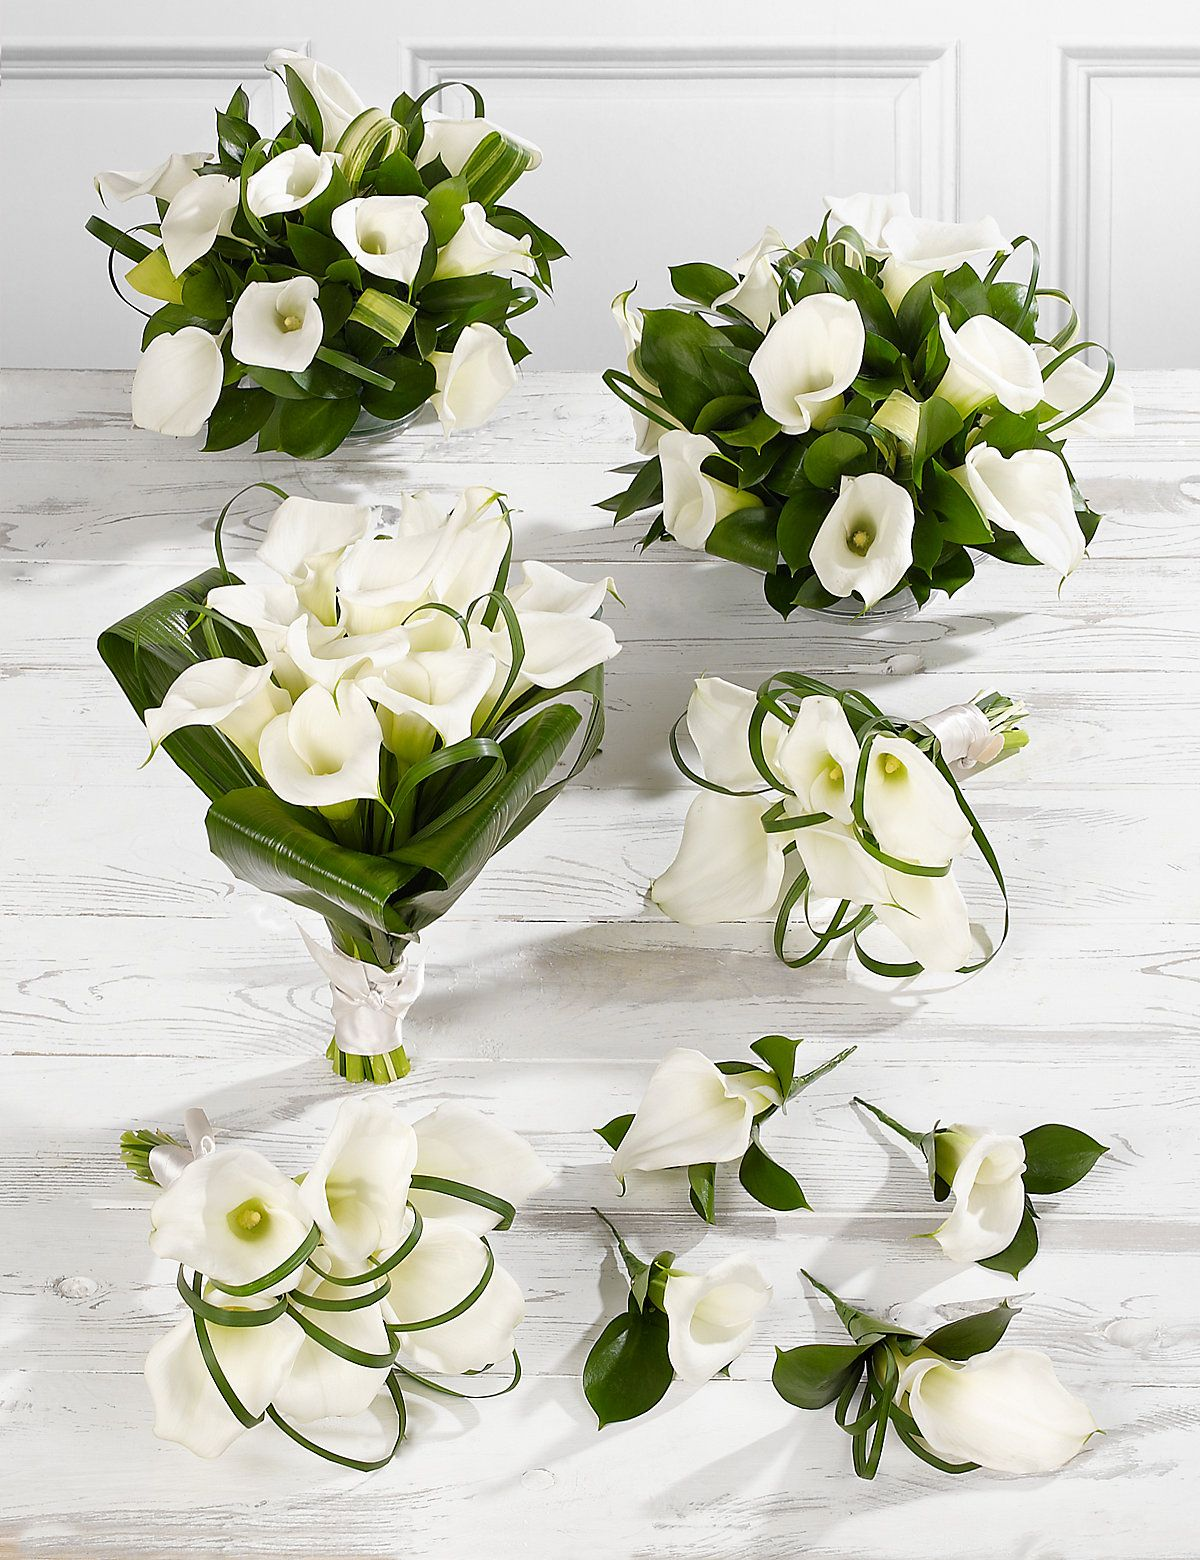 Make A Dramatic Entrance With This White Calla Lily Wedding Flowers Collection